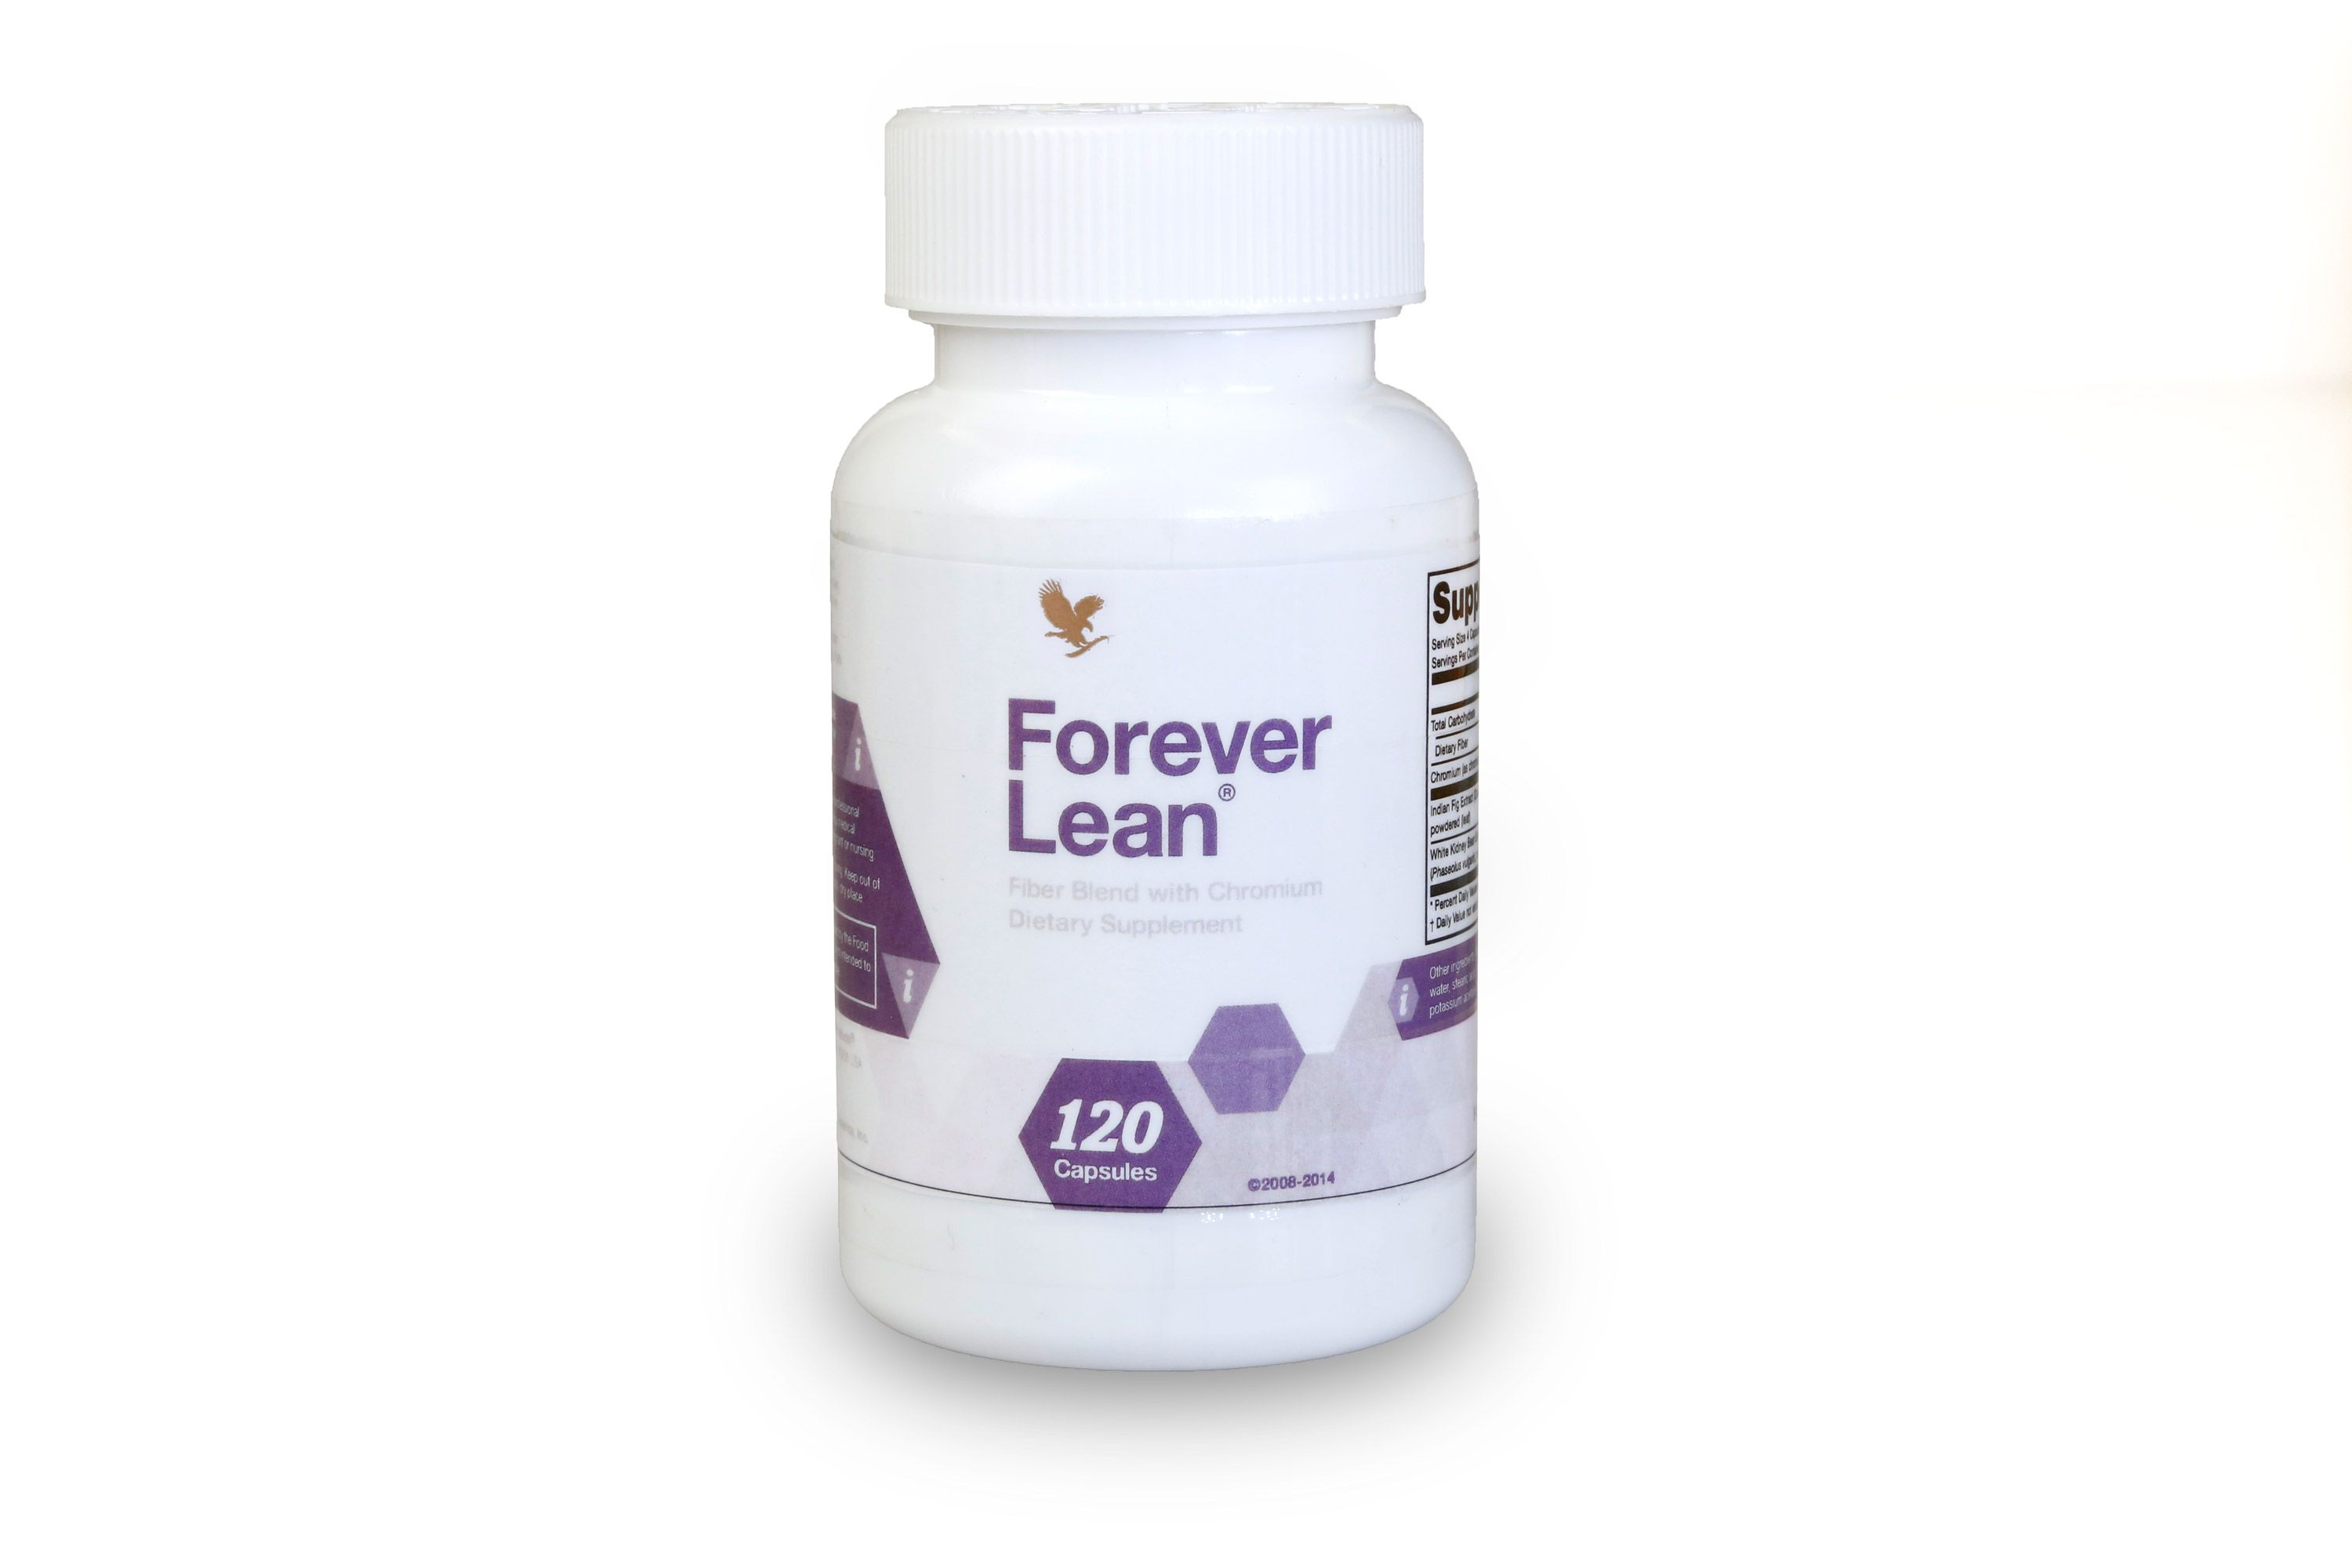 Forever Lean® contains two revolutionary ingredients that can help reduce the body's absorption of calories from fat and carbohydrates.